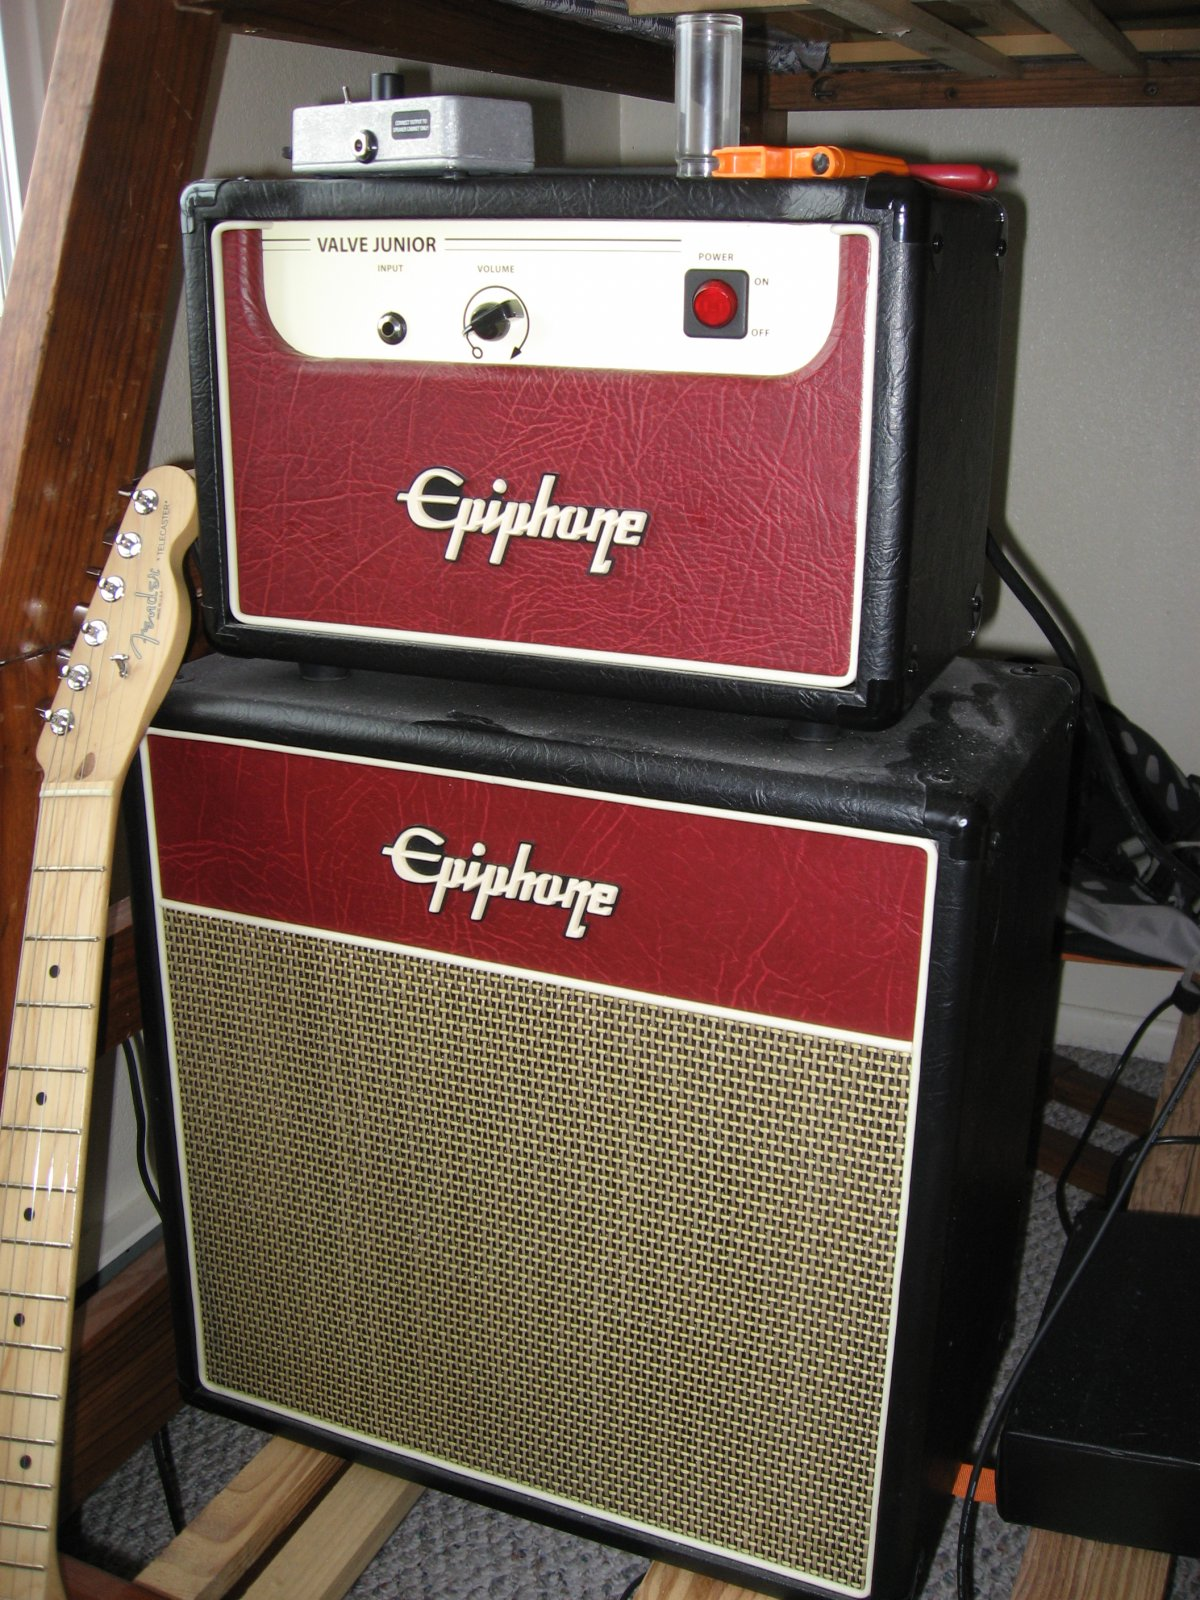 Epiphone Valve Junior head and Matching 1 12 cab USED